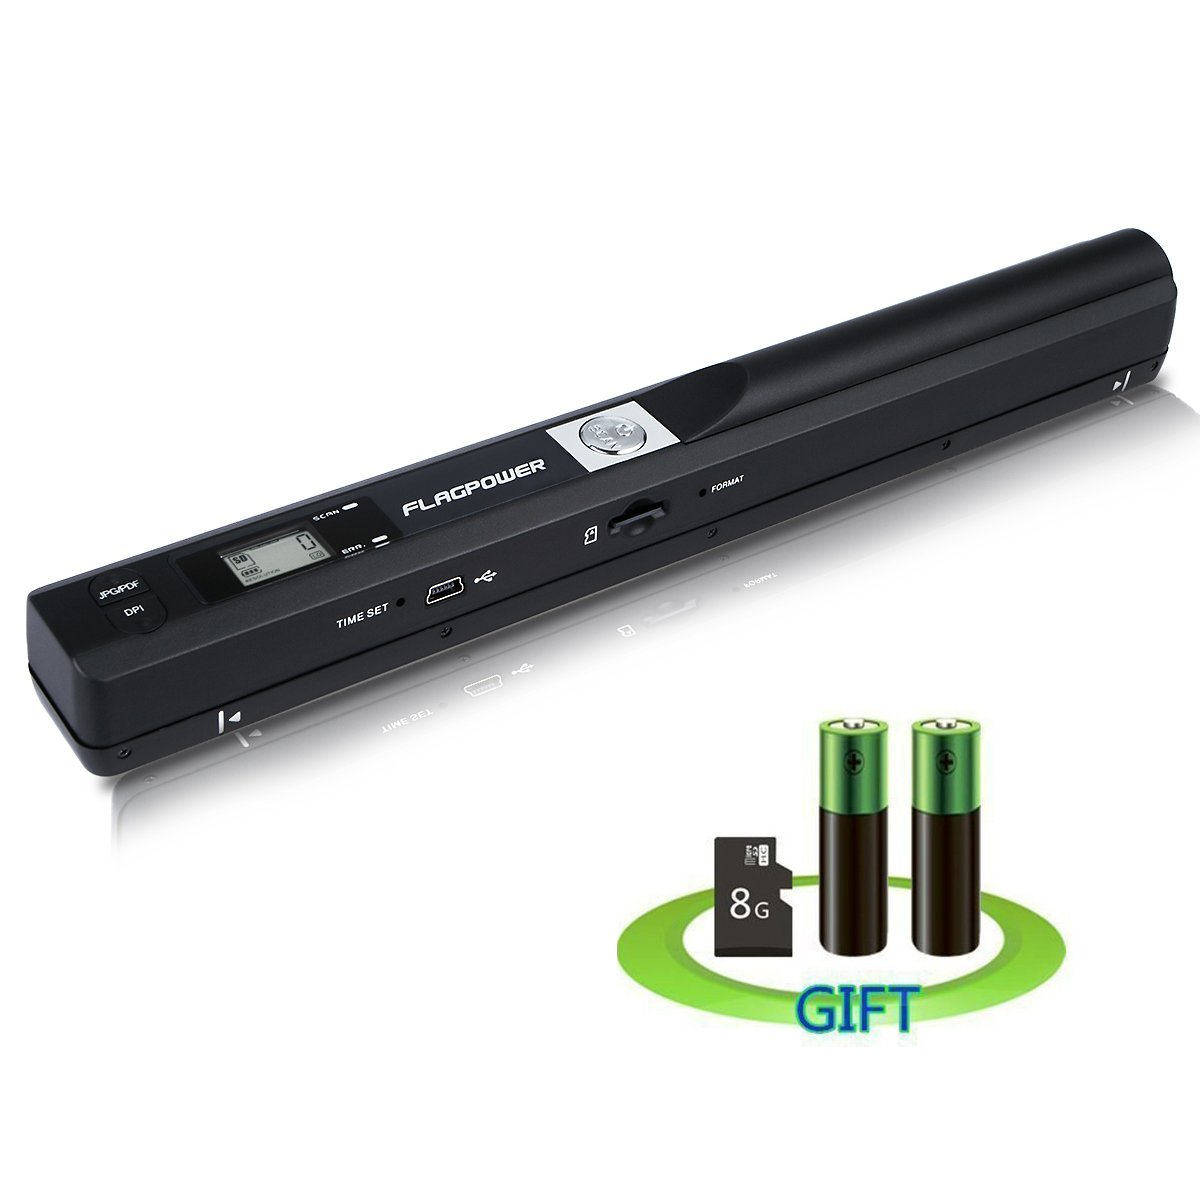 FLAGPOWER 900DPI Solutions Magic Wand Portable Scanner Handheld Wireless Document & Image Scanner USB Mobile Scanner (Included 8G Micro SD Card and Two AA Battery)